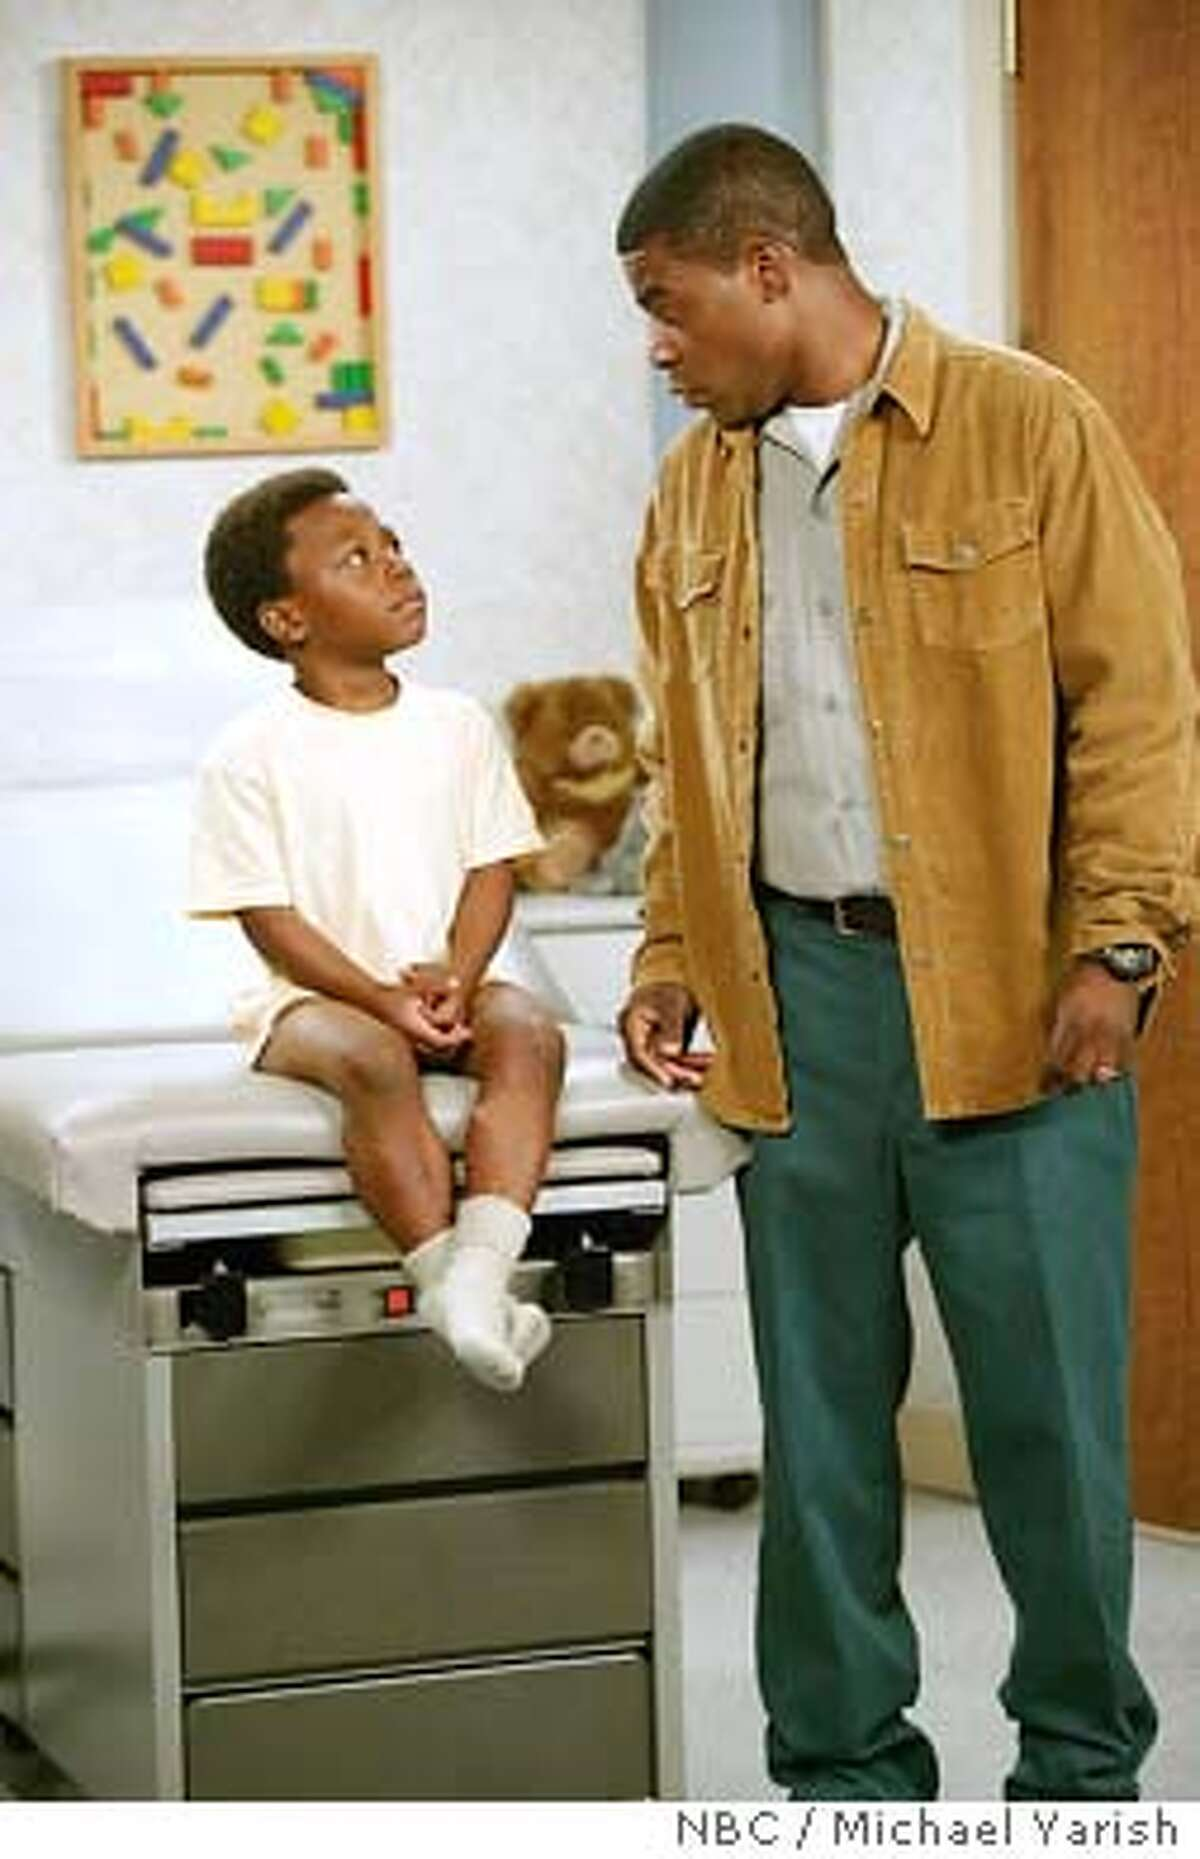 """** ADVANCE FOR WEEKEND, NOV 29-30 ** Bobb'e J. Thompson as Jimmy Mitchell, left, and Tracy Morgan as Tracy Mitchell appear in this scene from NBC's """"The Tracey Morgan Show,"""" in this undated publicity photo. The new sitcom premieres at 8 p.m. EST Tuesday, Dec. 2, 2003. (AP Photo/NBC / Michael Yarish) David Paymer was miscast as a mobster in Line of Fire."""